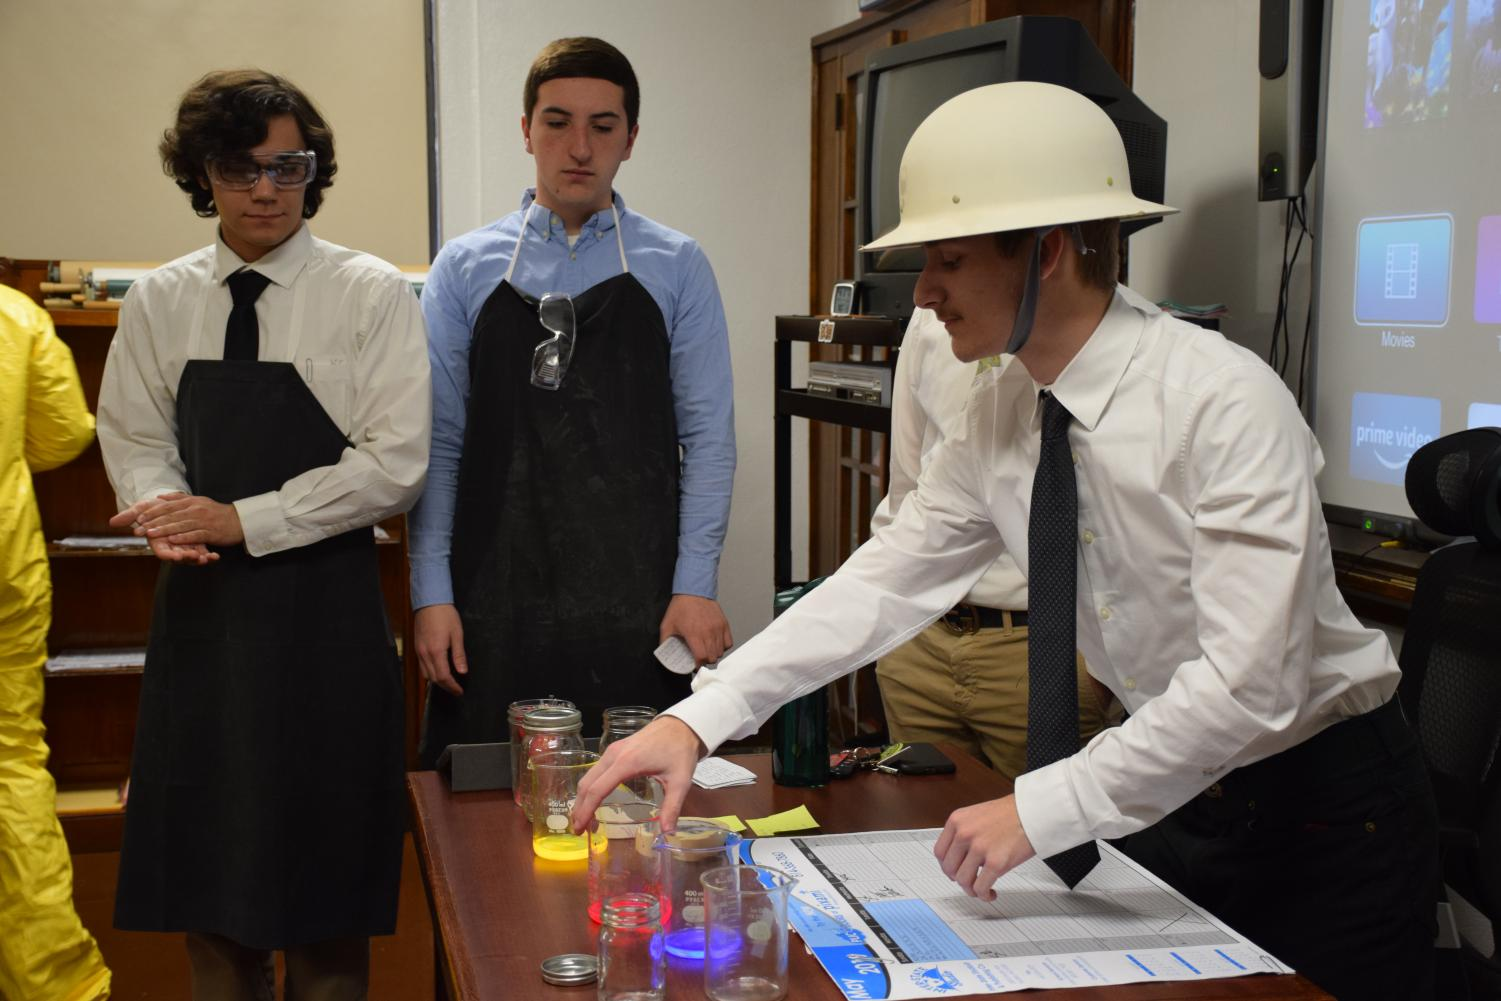 Junior Kenneth Glore can be seen demonstrating his part of the presentation. He was describing the uses for radioactive material during the Manhattan Project.